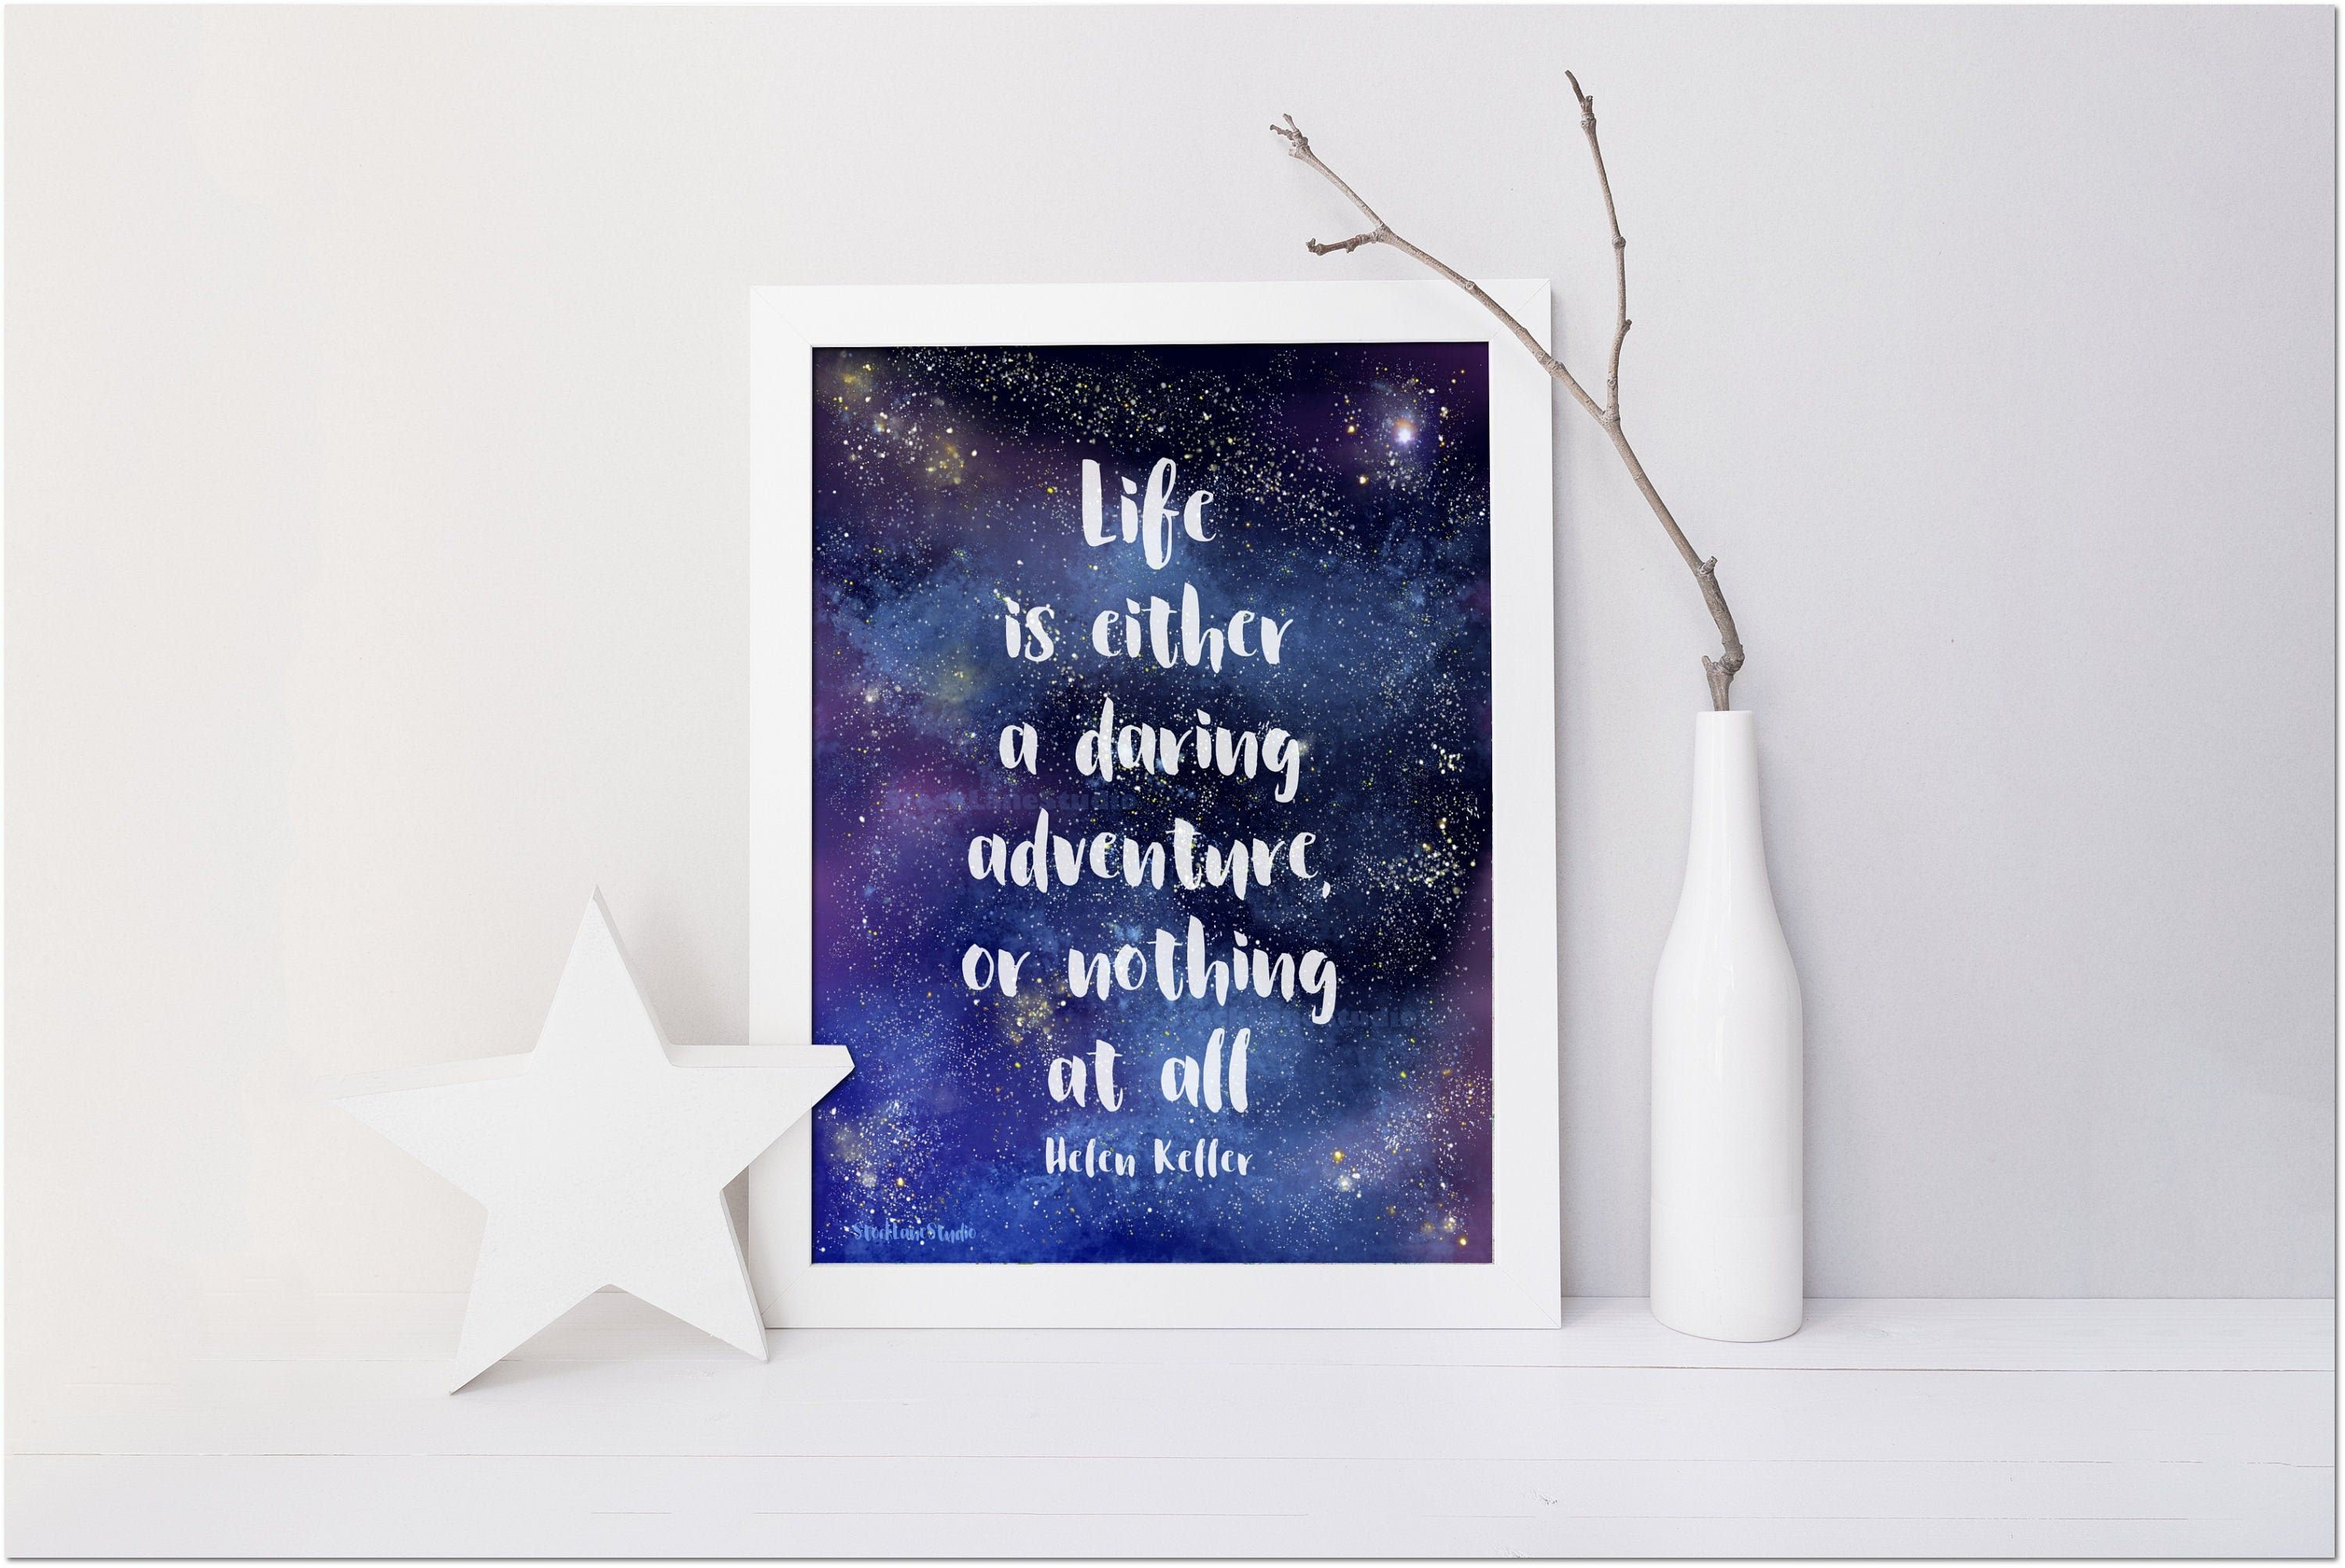 Life Is Daring Adventure Or Nothing At All Printable Helen